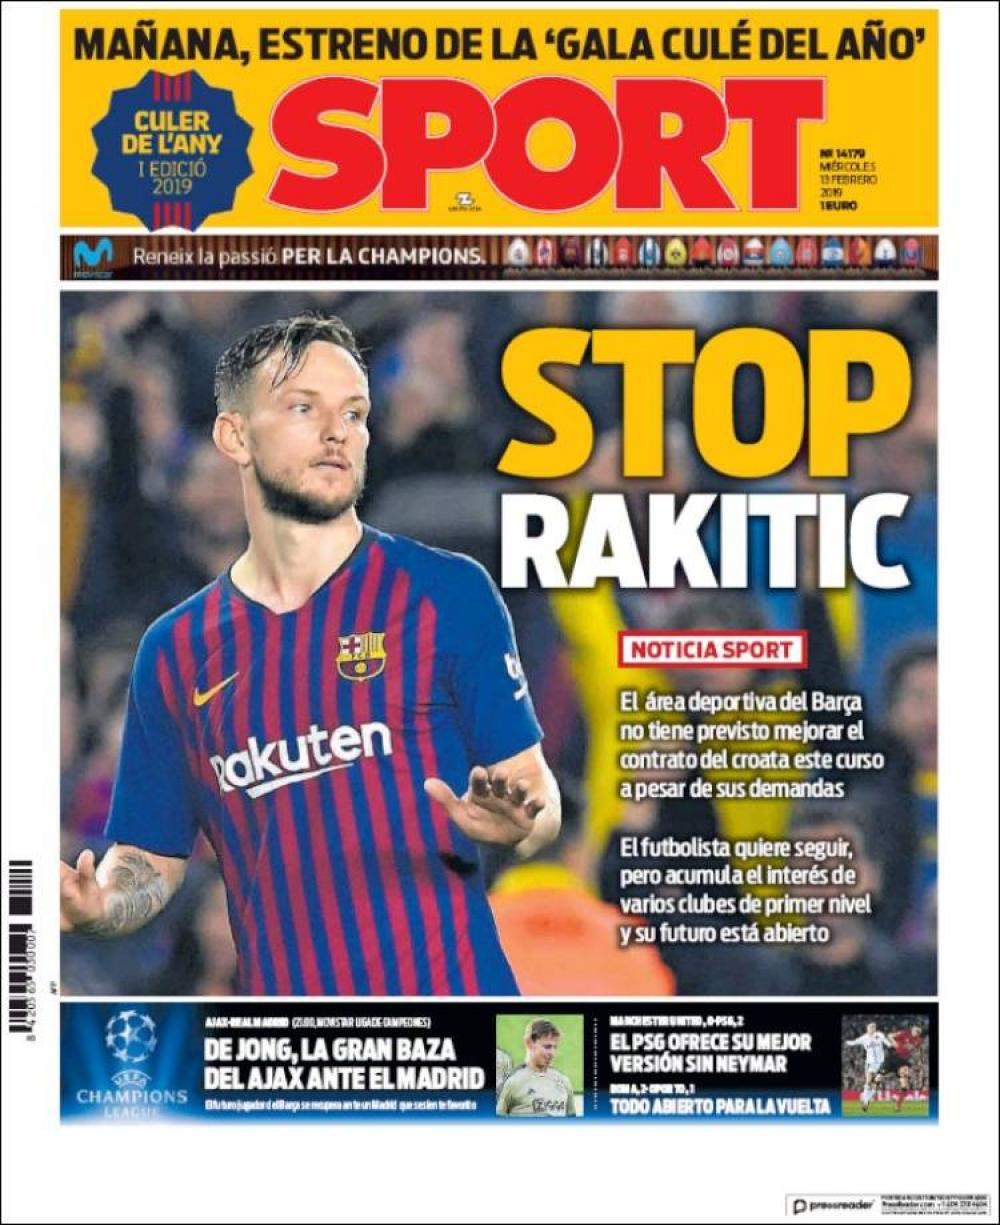 Barca - Future Rakitic becomes clearer